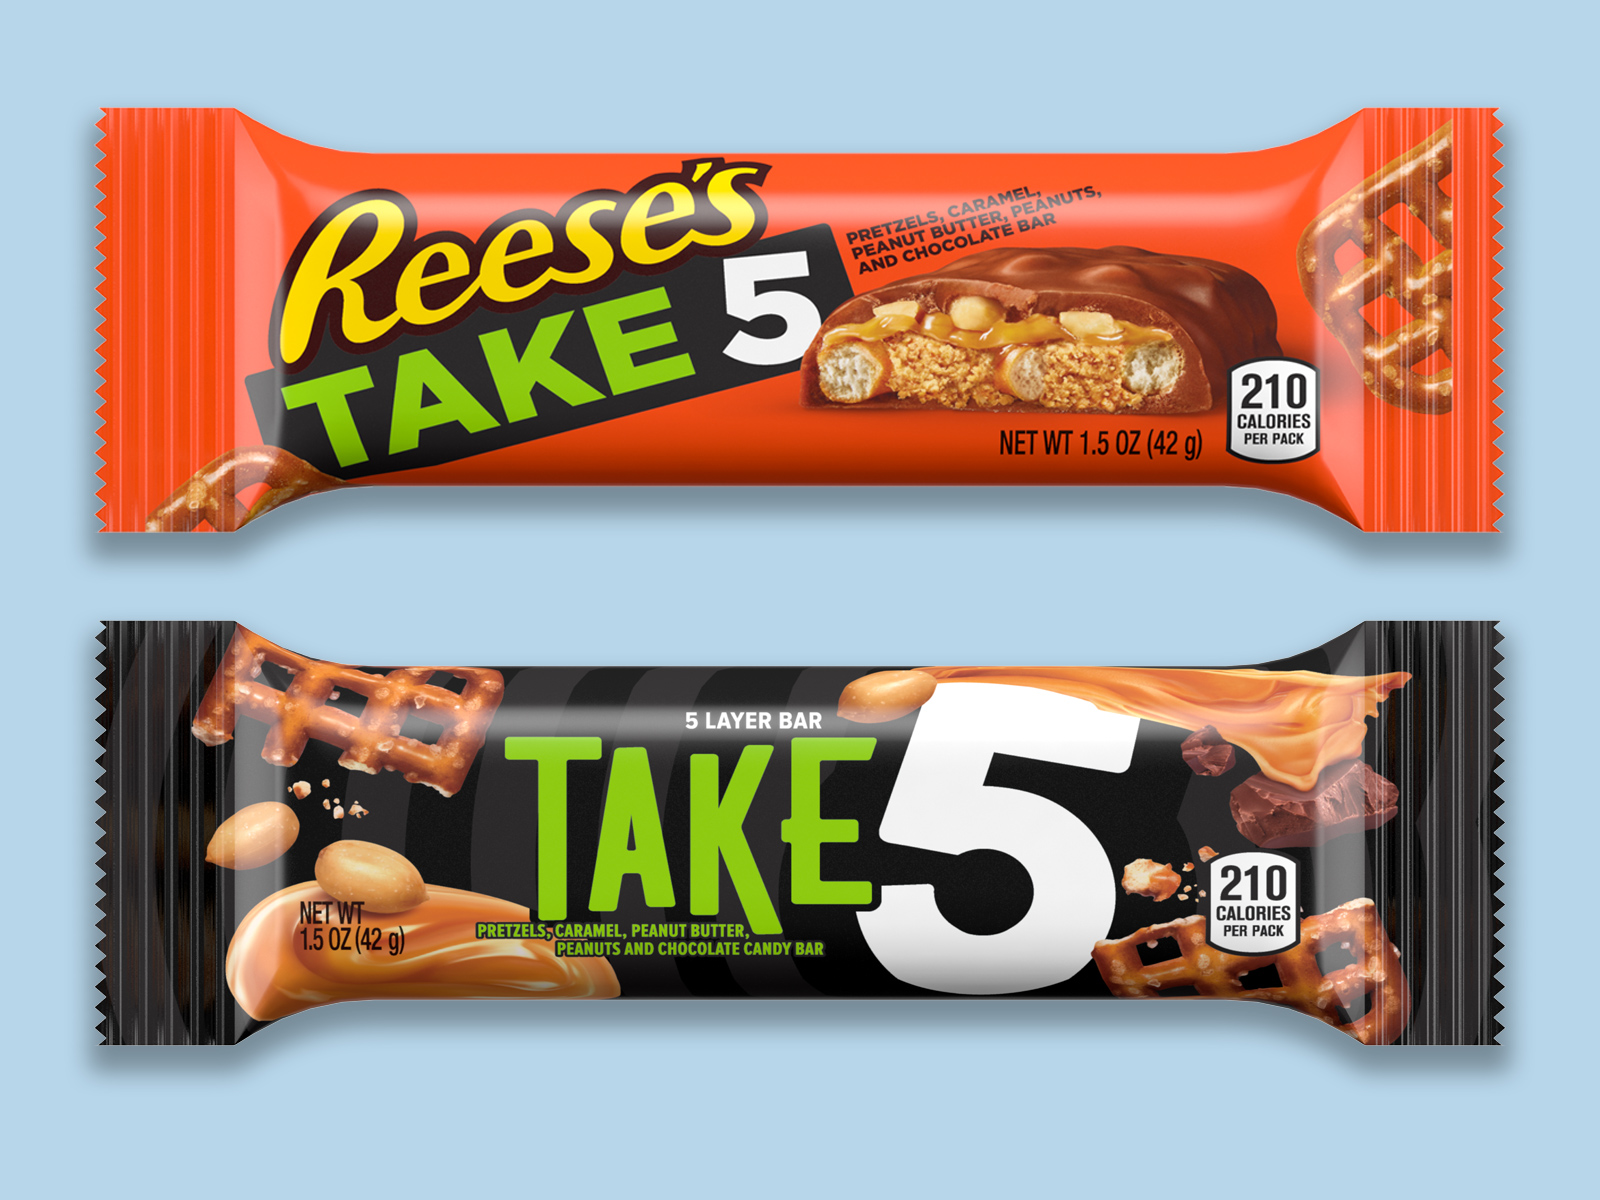 Hershey's Take5 Candy Bar Is Officially a Reese's Product